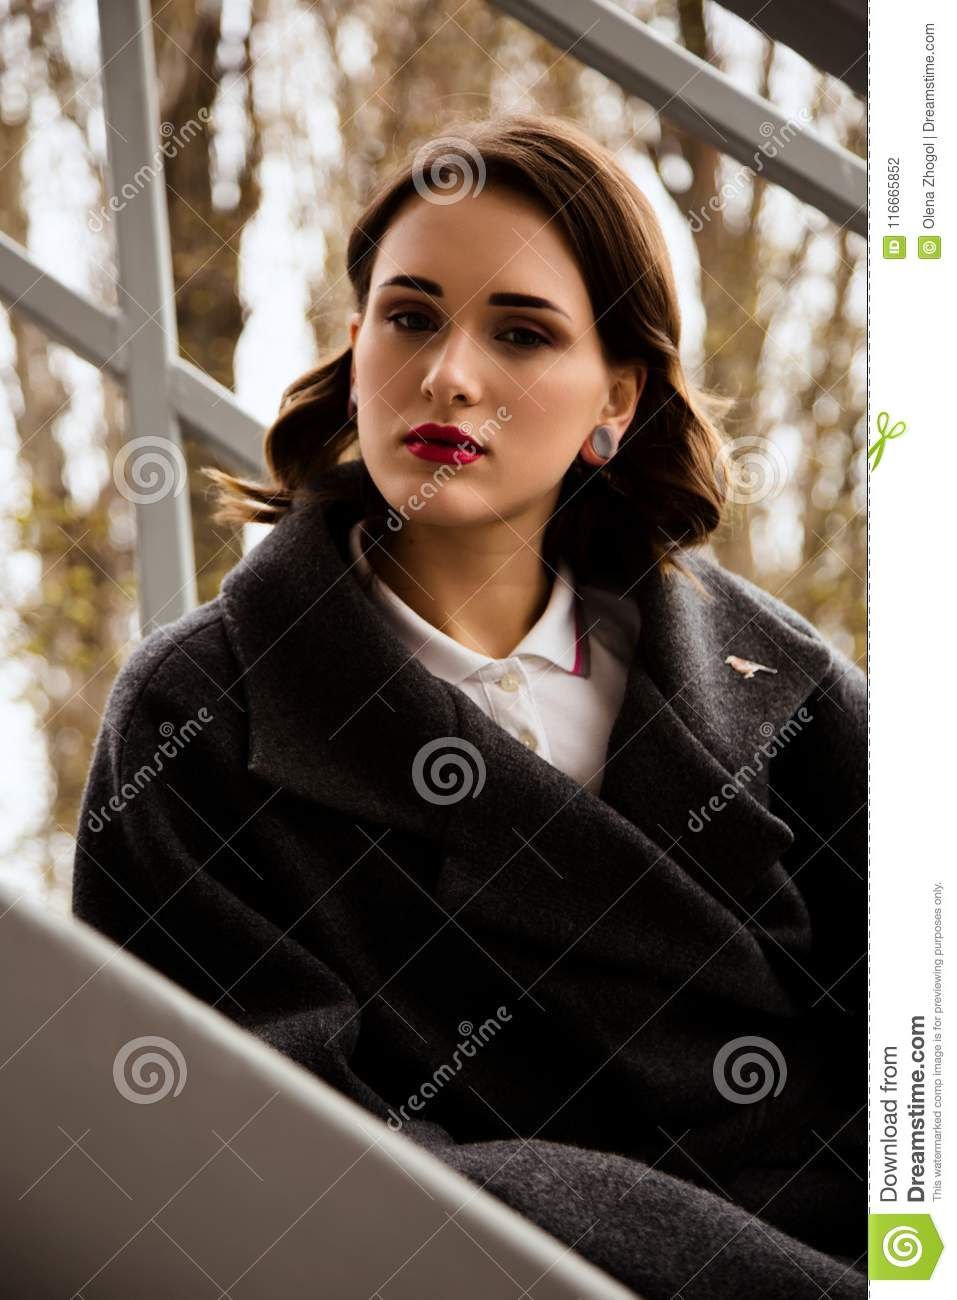 Fashion Outdoor Portrait Of Stylish Woman On The Street